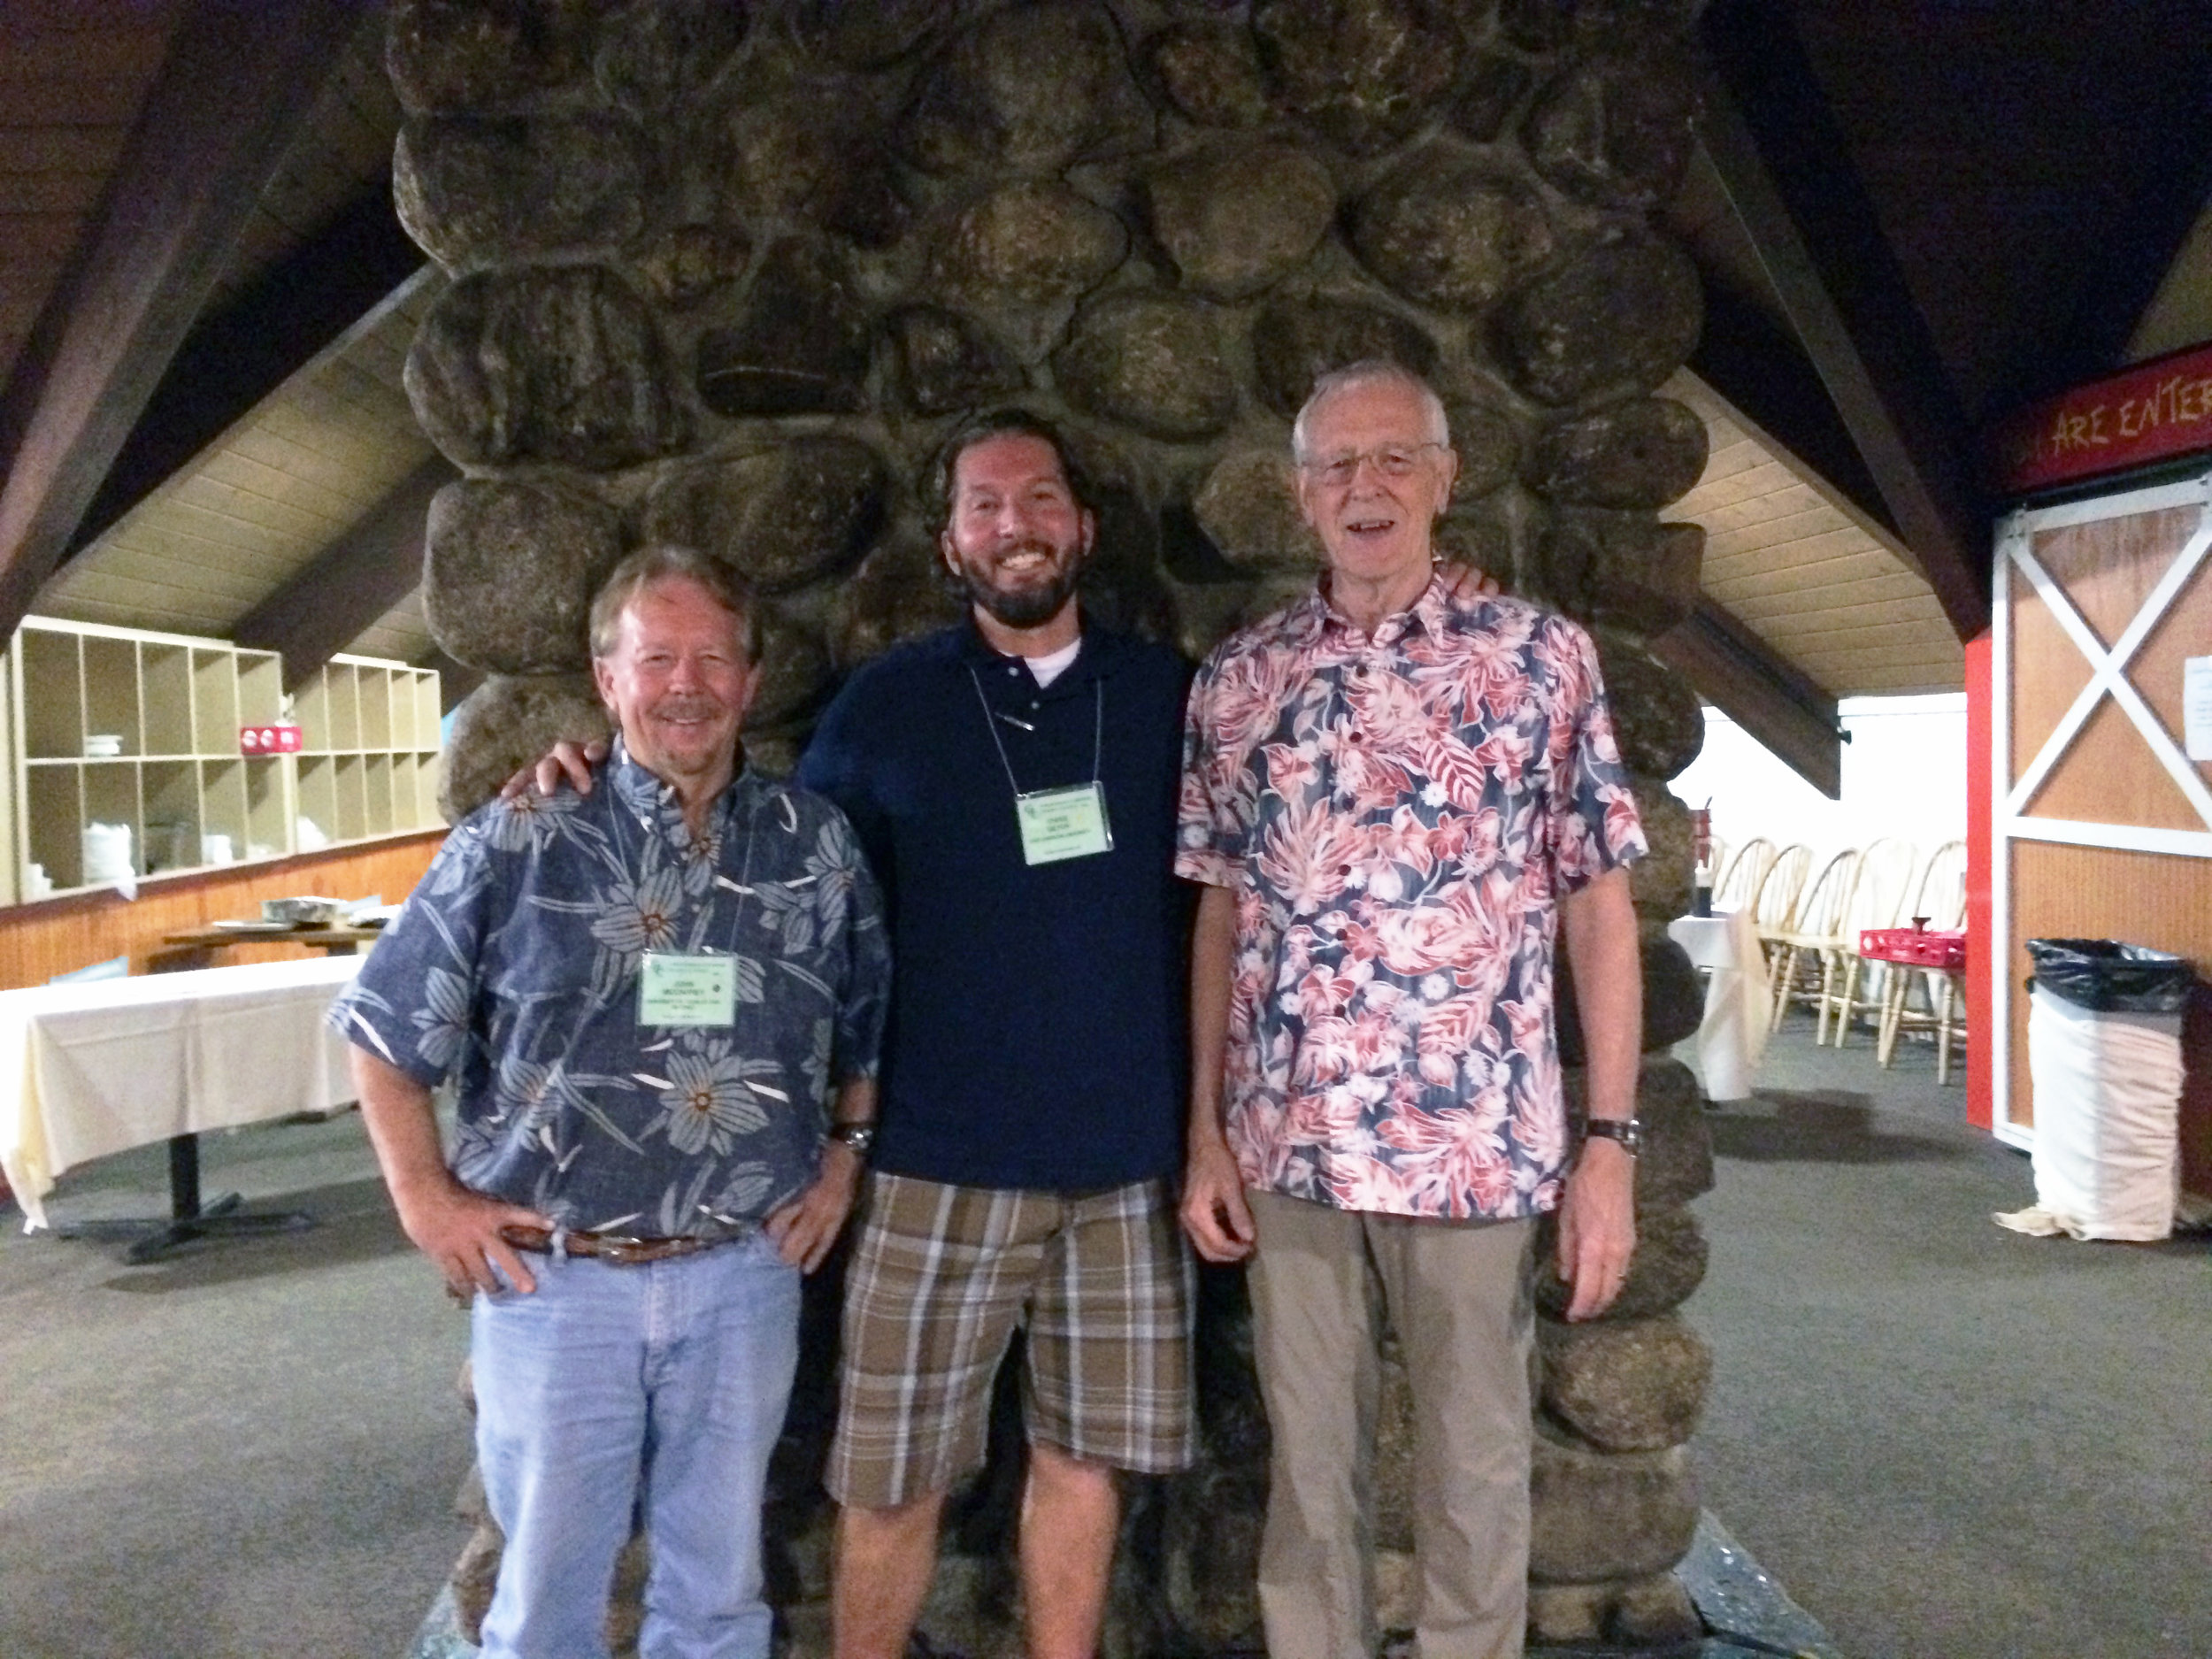 Chris hanging out with his mentors at the 2016 Gordon Research Conference at the Waterville Valley Resort, N.H. On Chris's right is his Ph.D. advisor, John McCarrey (University of Texas at San Antonio), and on his left is his postdoctoral advisor, Mitch Eddy (National Institute of Environmental Health Sciences, retired).